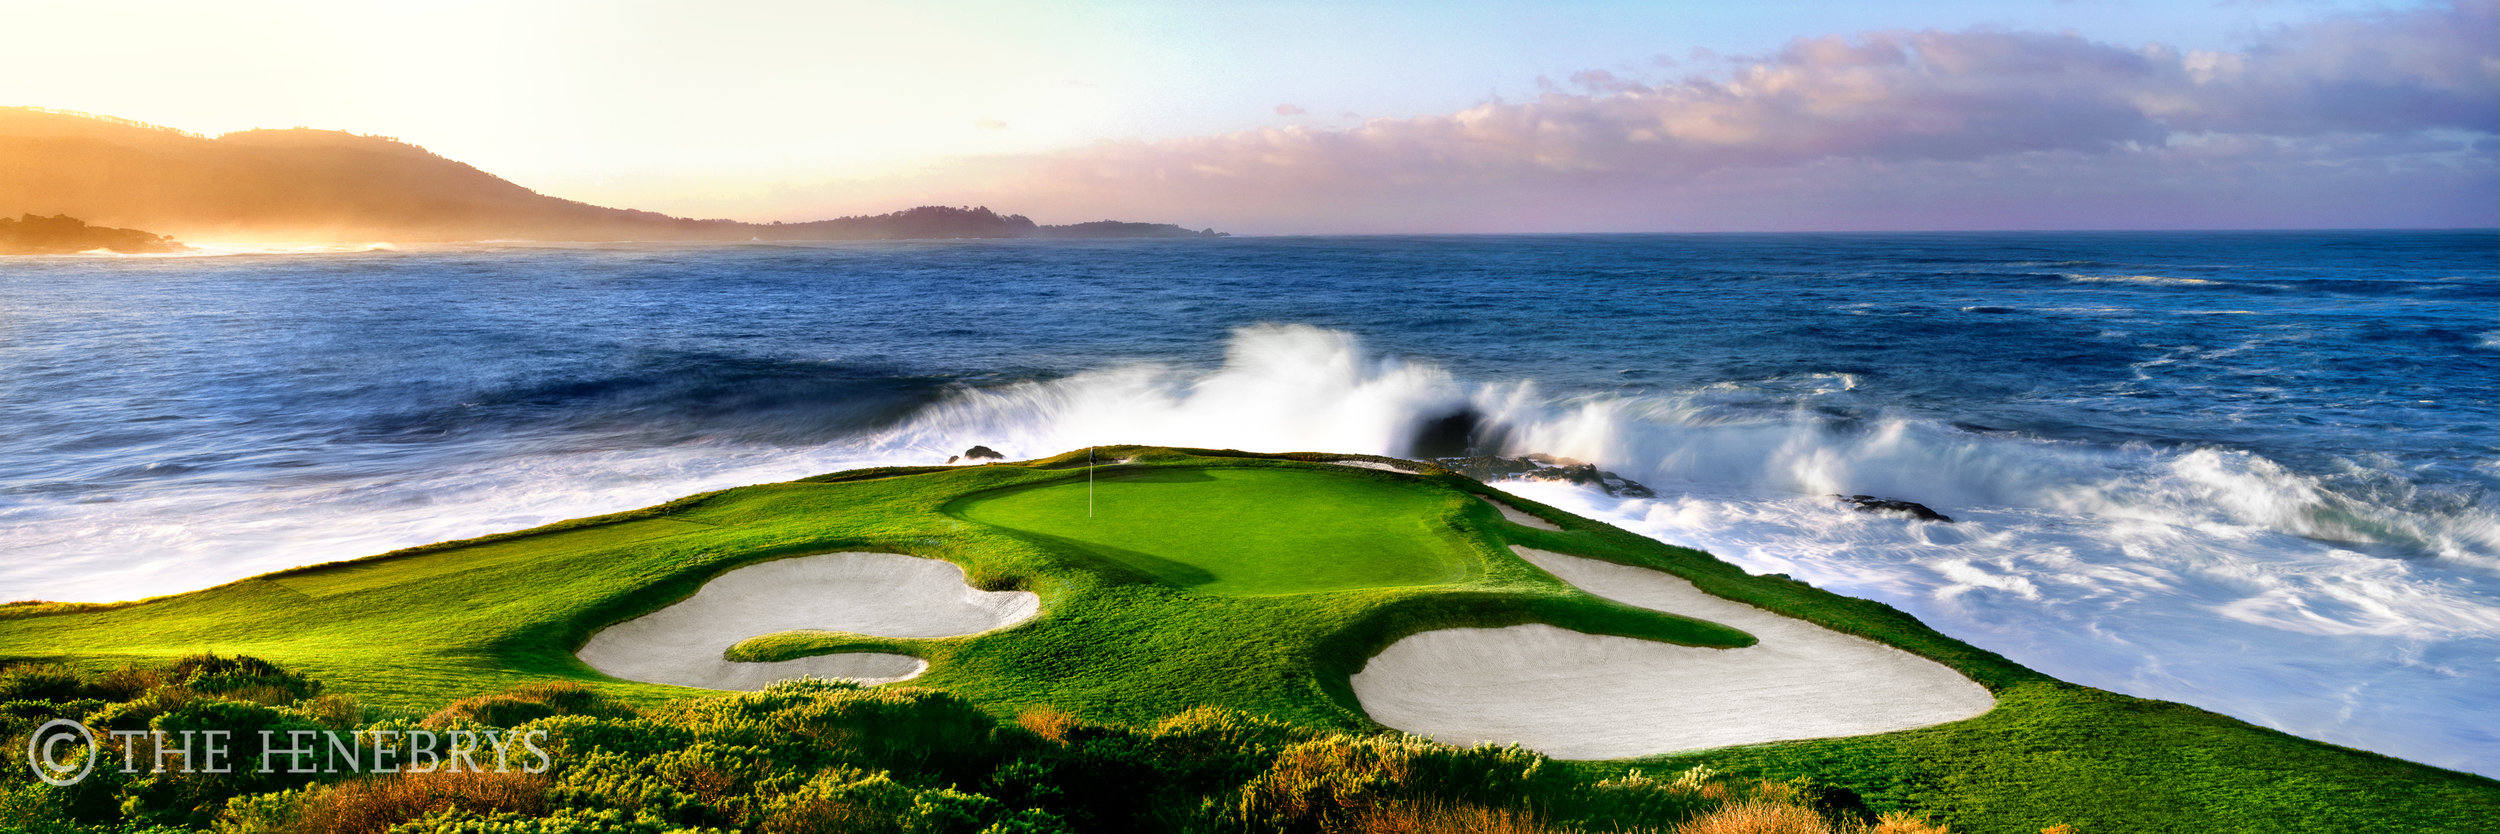 "Pebble Beach Golf Links® #07 ""King Tide"", Pebble Beach, California"